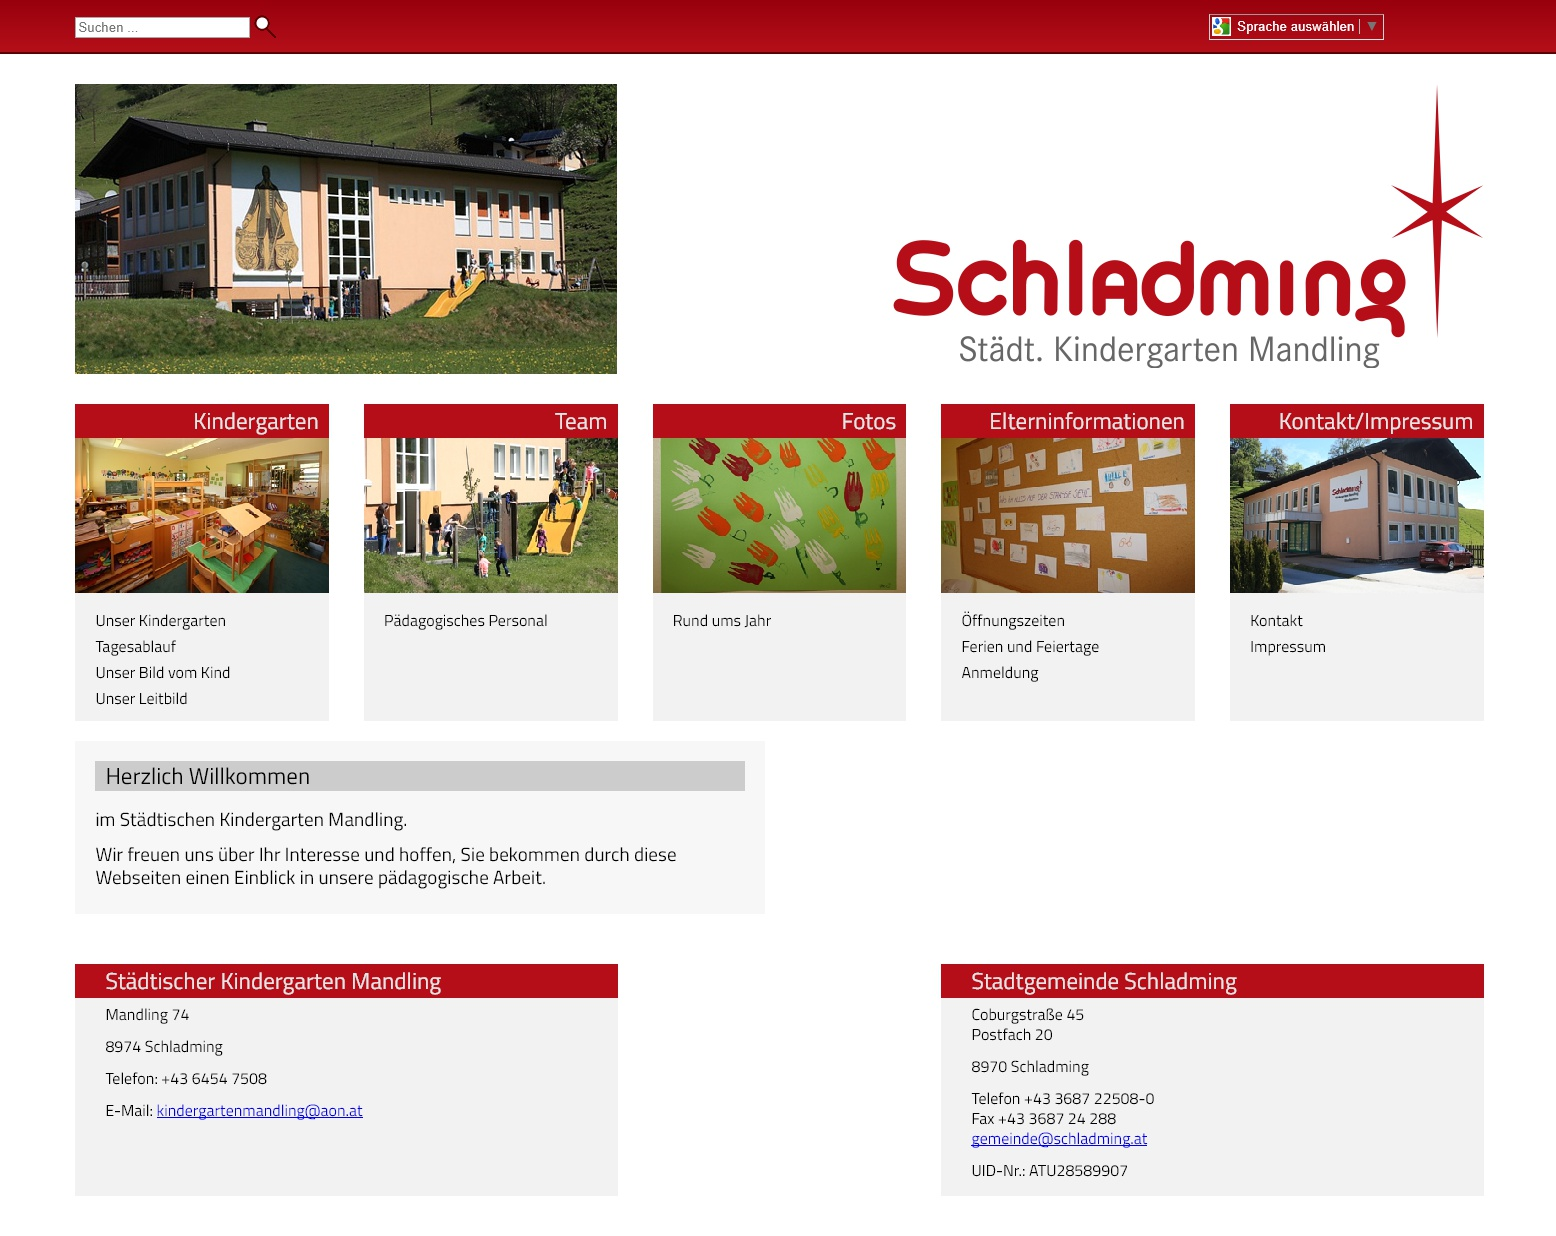 Screenshot kiga-mandling.schladming.at